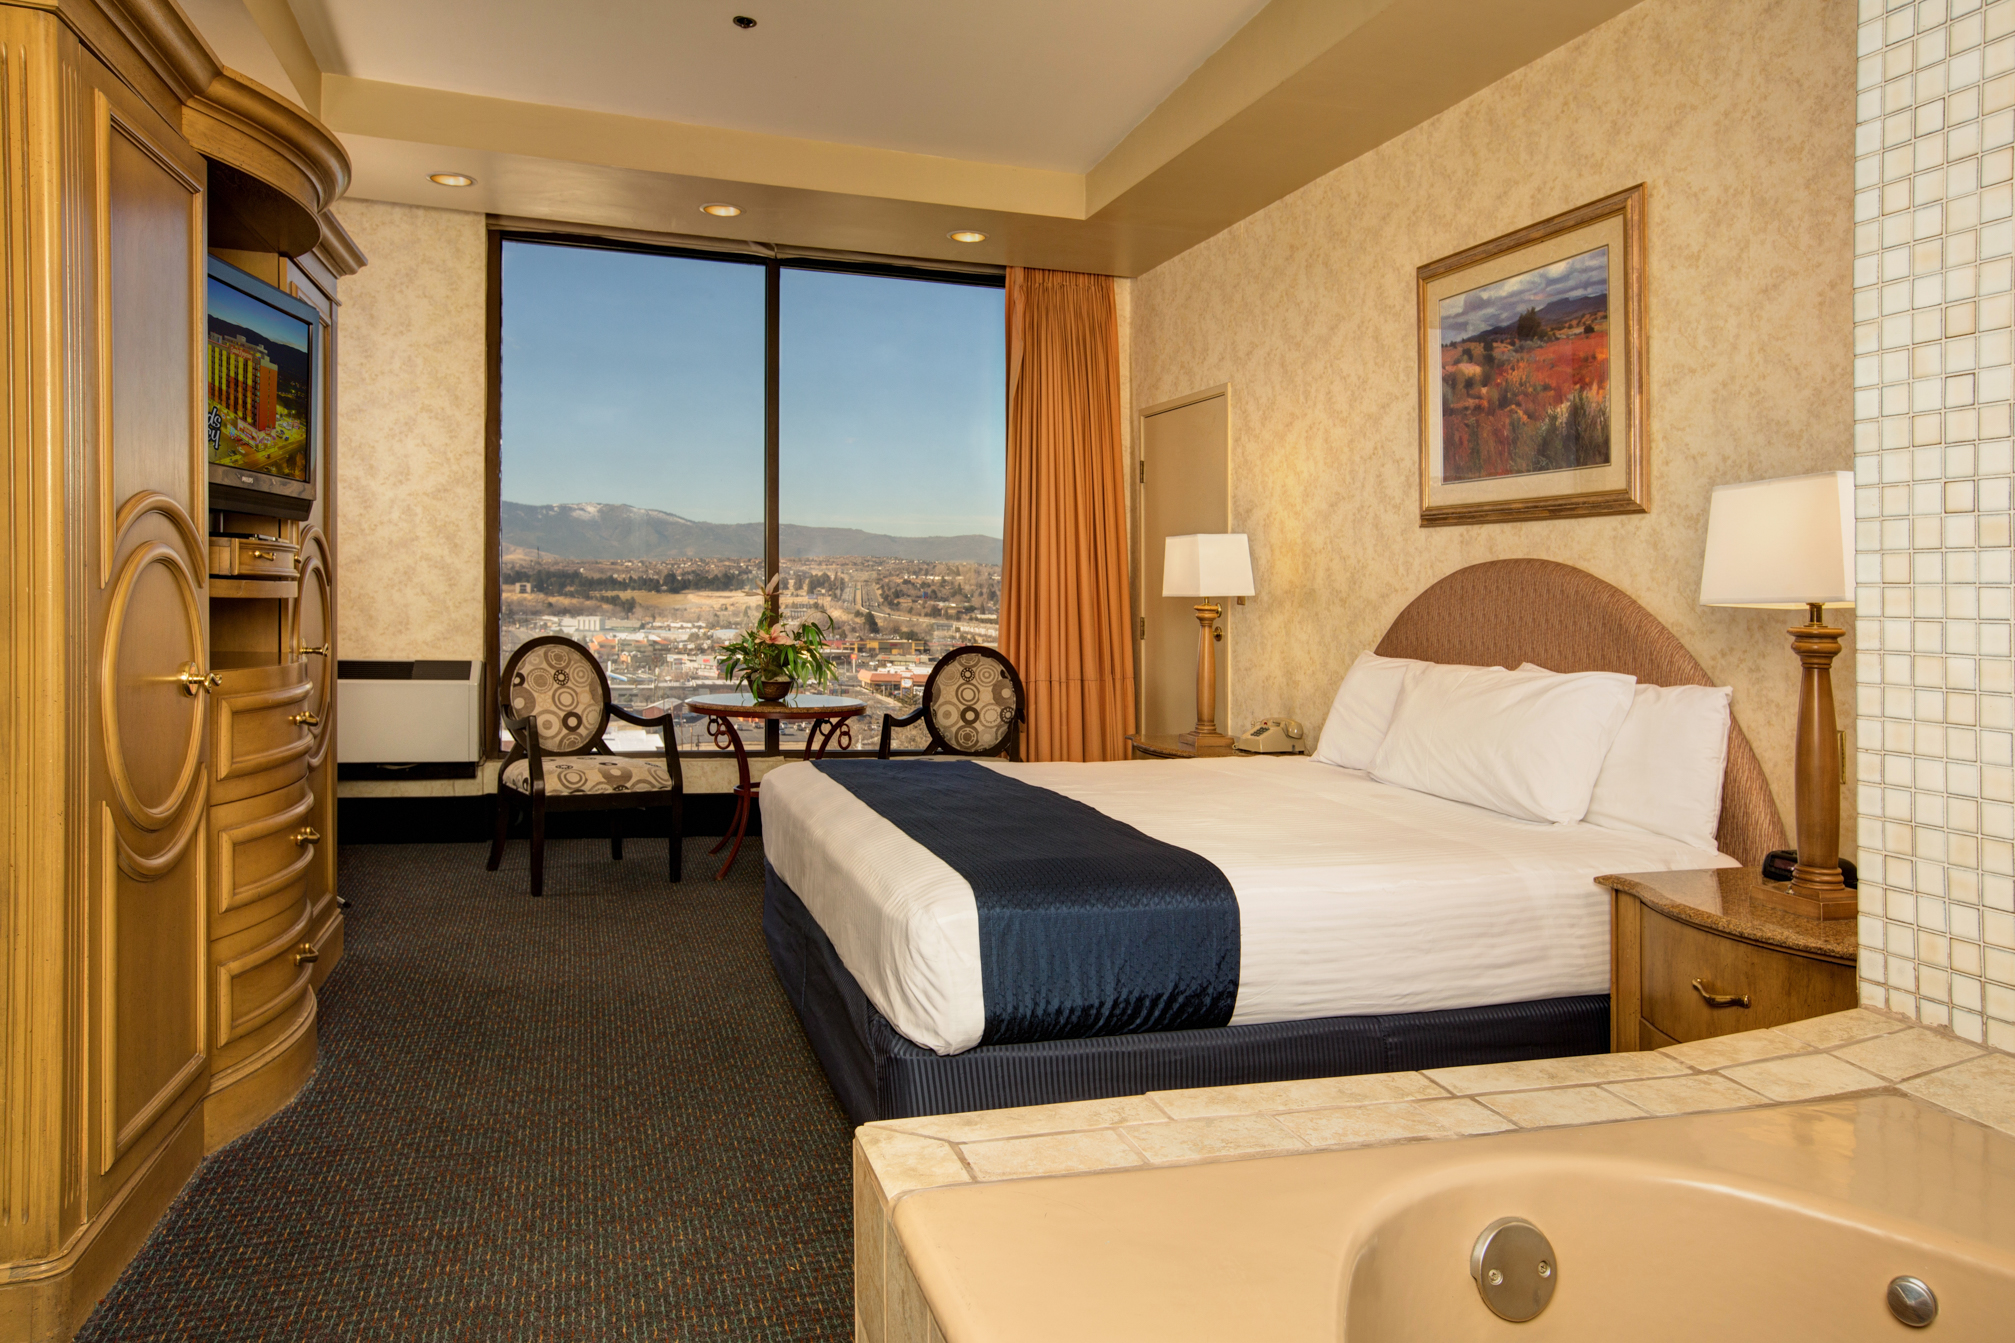 hotels in reno nv